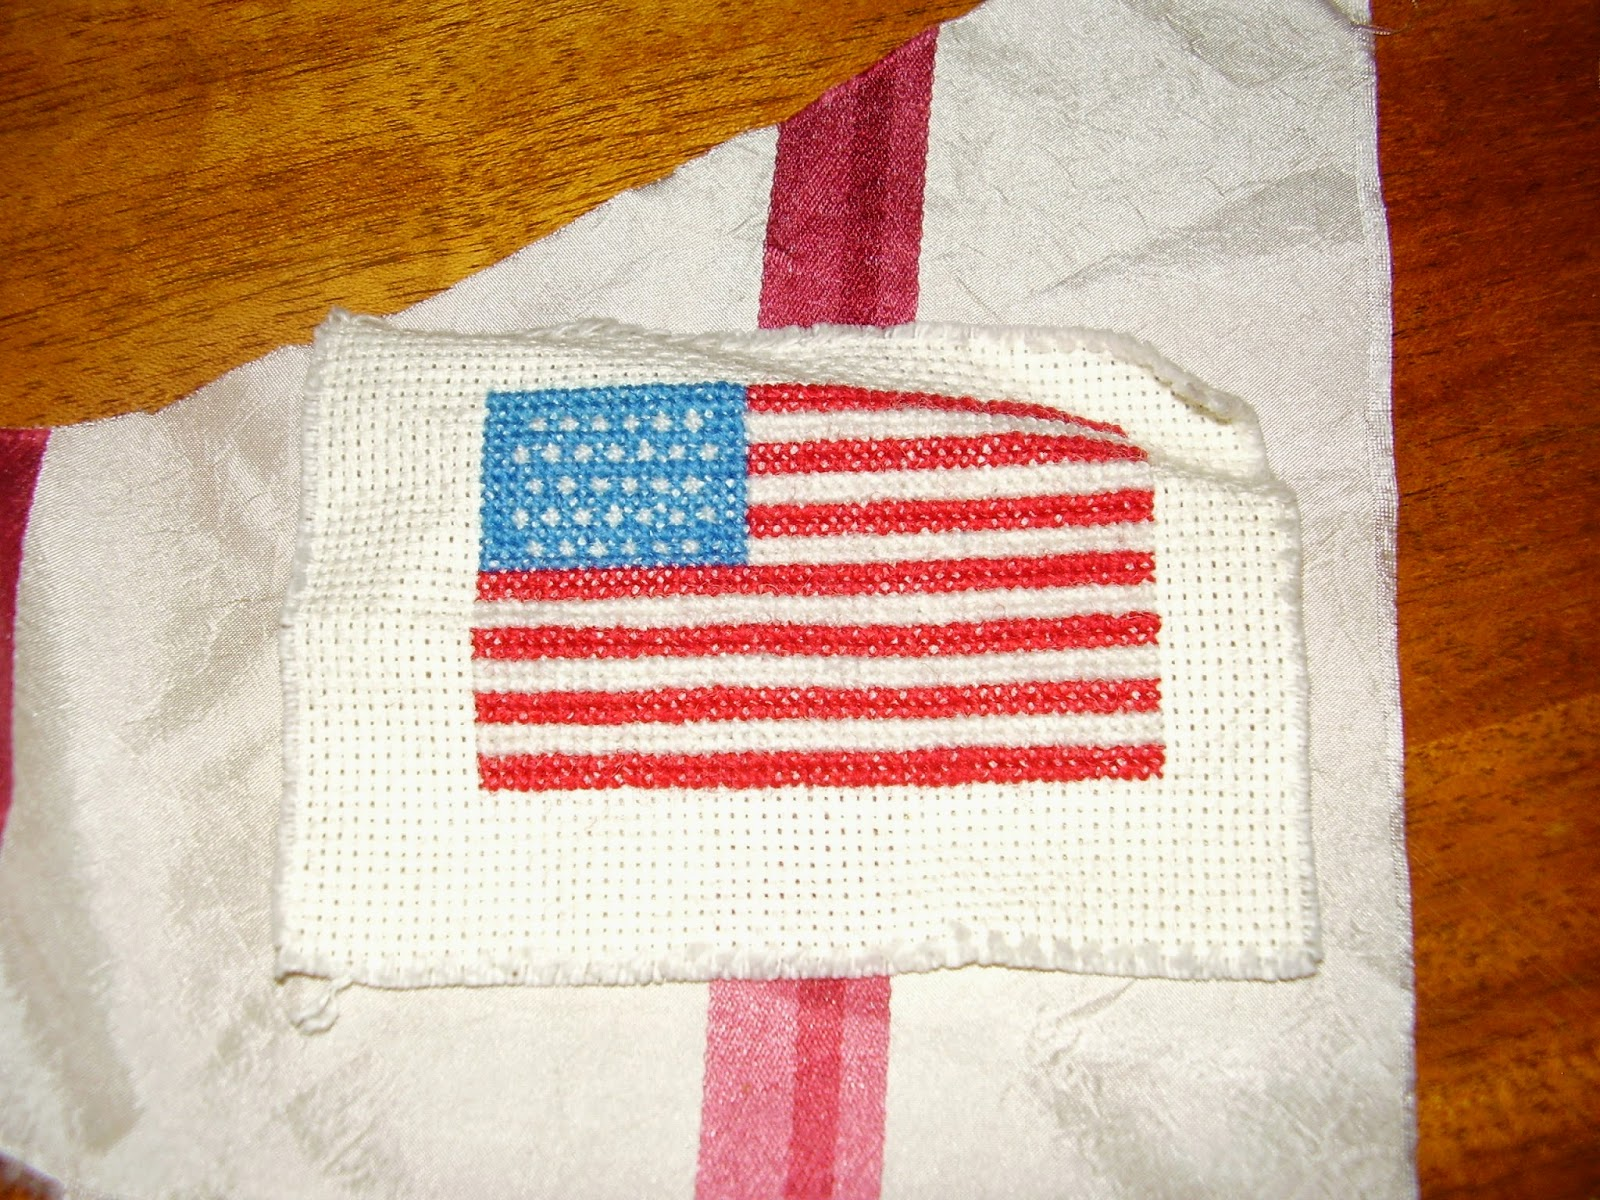 Cross stitched American flag with 32 stars.